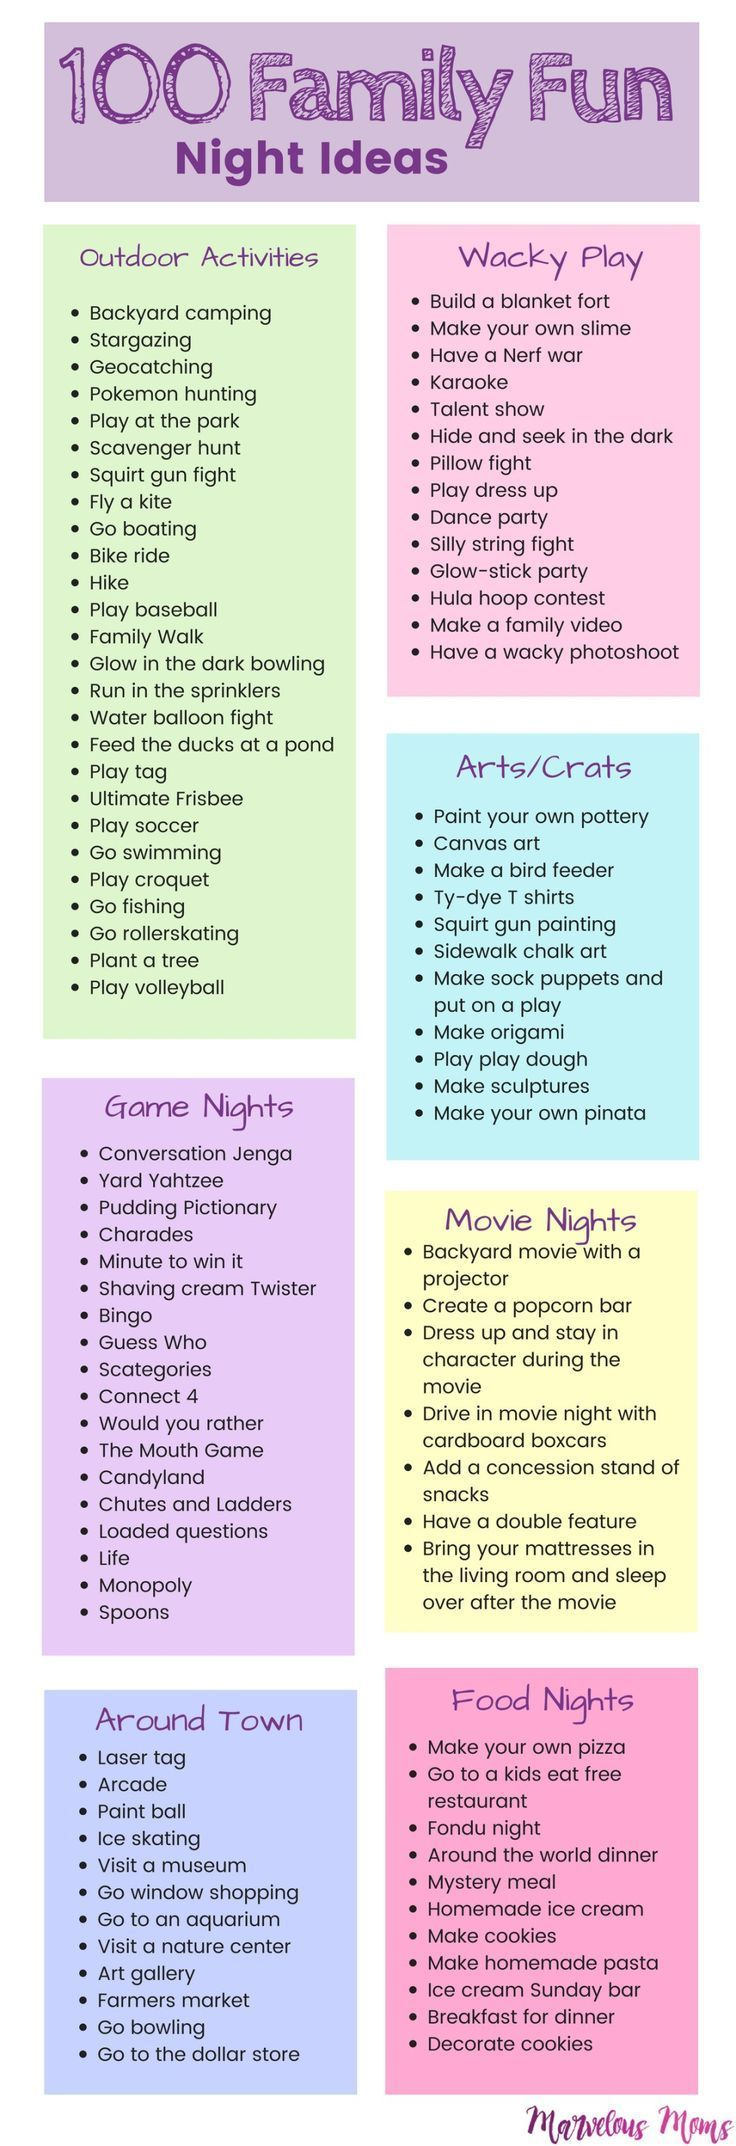 100 Family Fun Night Ideas | Kids activities | Playing with Kids | Activities for toddlers to teenagers | Free Family Nights | Outdoor activities | Movie Nights | Game Nights #bondingwithchild